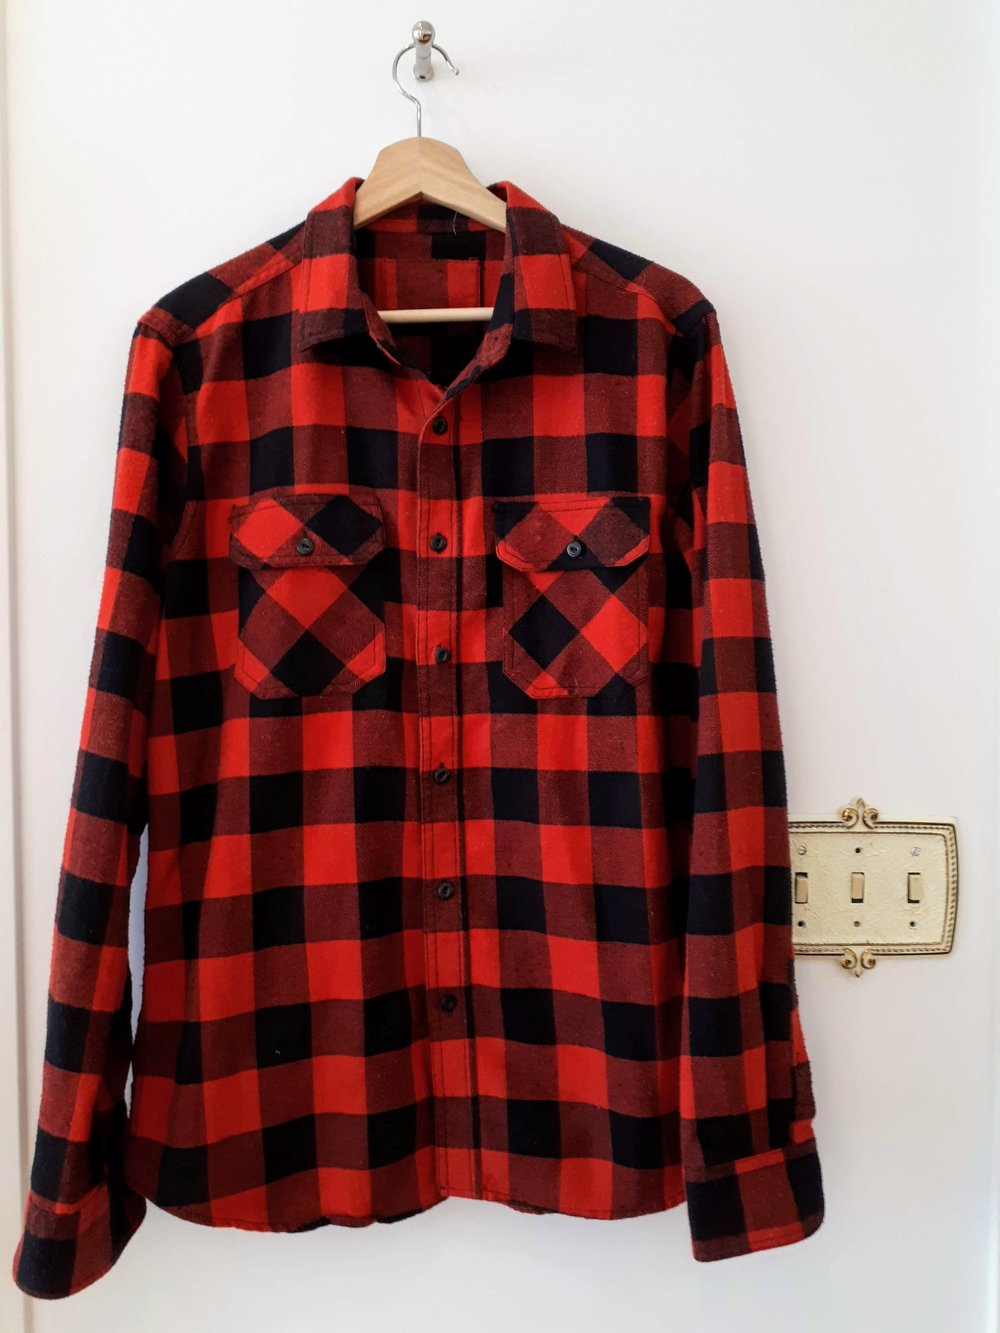 Mens top; Size M, $24